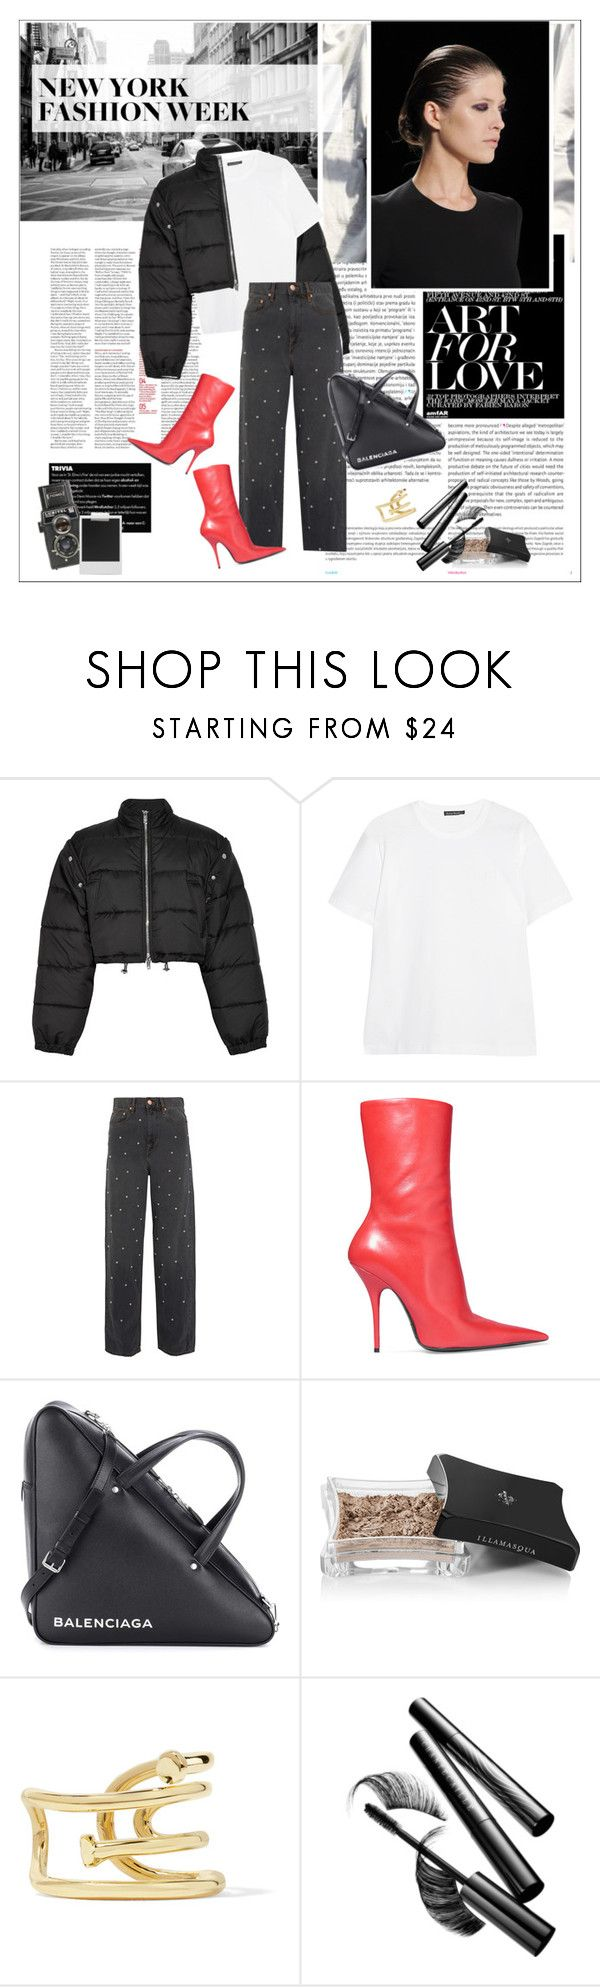 """#nyfw"" by stylemeup-649 ❤ liked on Polyvore featuring Oris, 3.1 Phillip Lim, Acne Studios, Étoile Isabel Marant, Balenciaga, Illamasqua, Jennifer Fisher, Chantecaille and Polaroid"